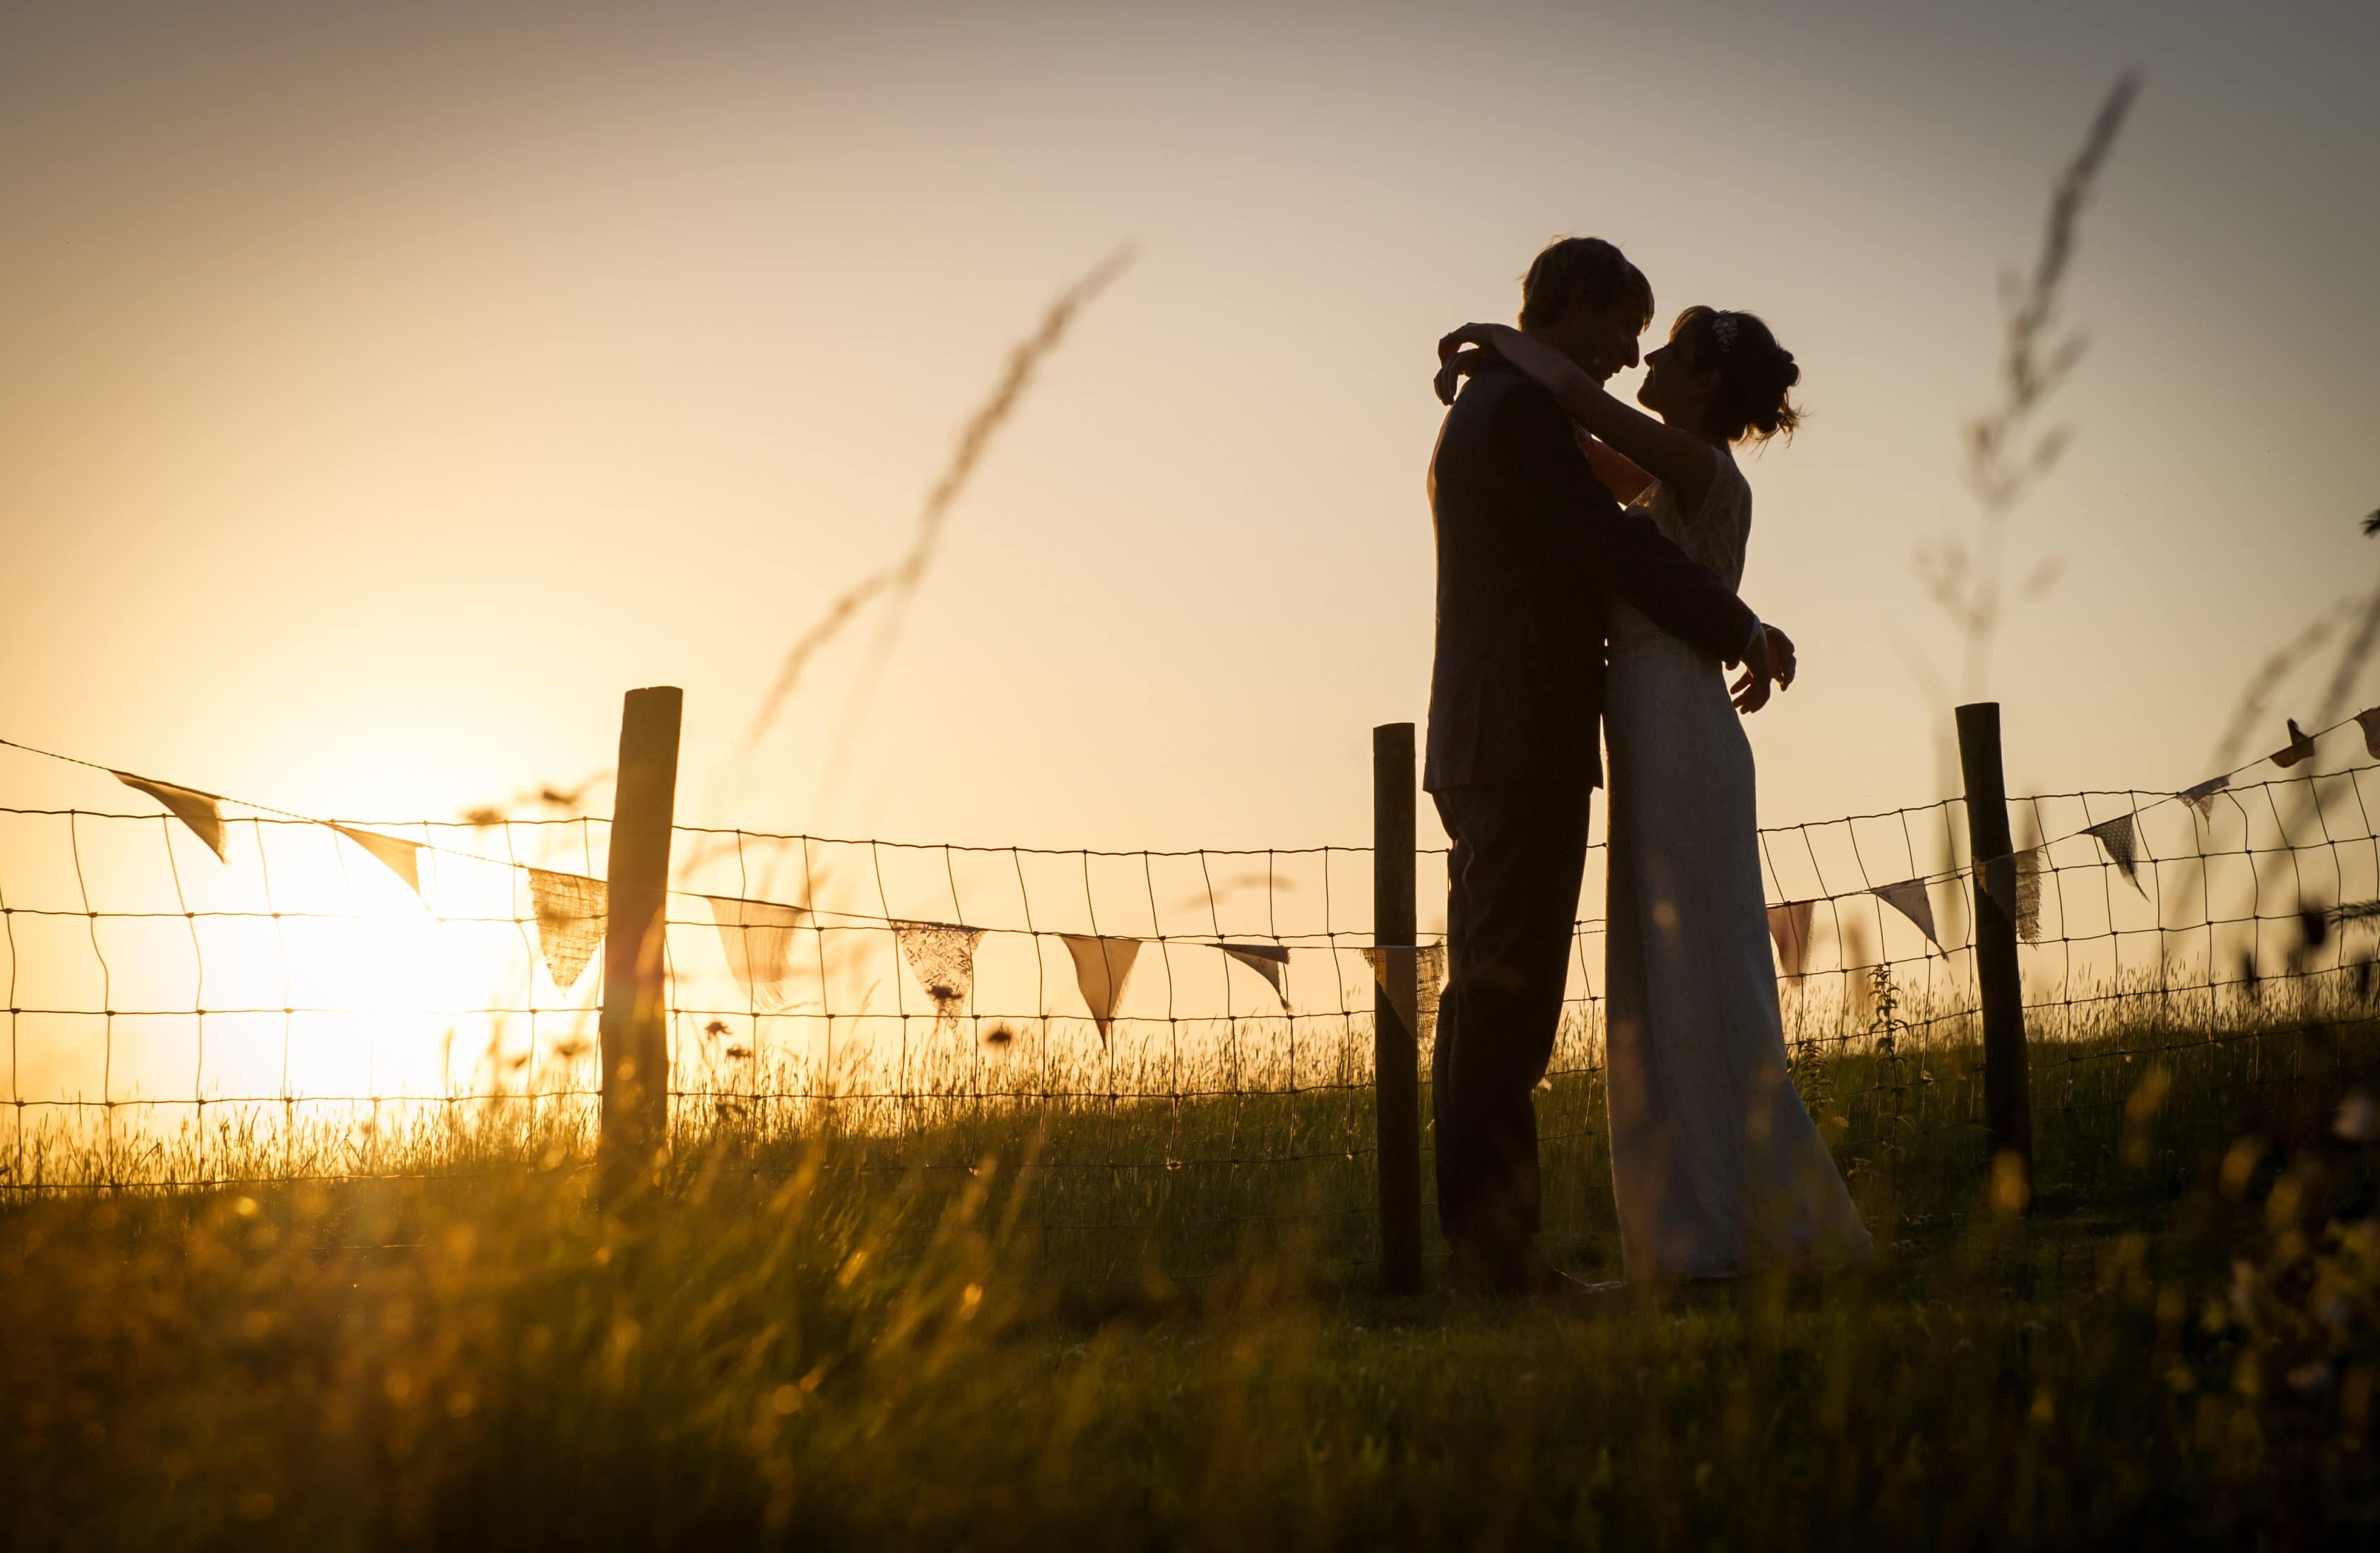 Dorset-Wedding-Photographer-Robin-Goodlad - Bride and groom at sunset